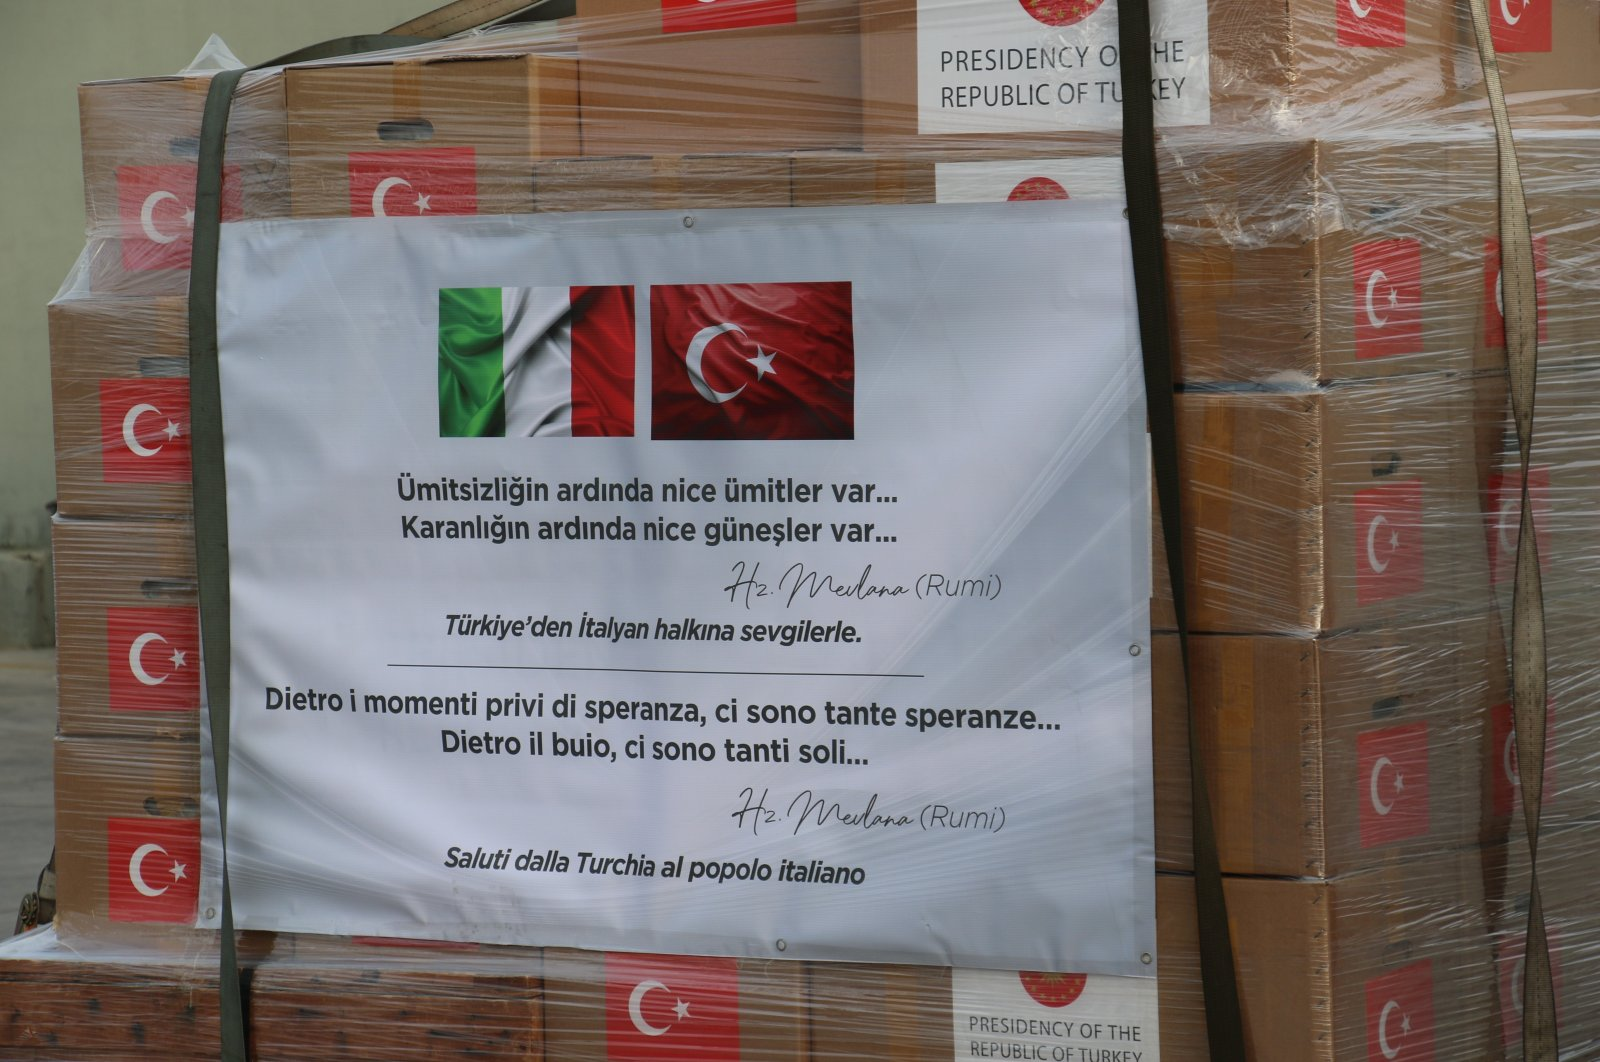 """""""There is hope after despair and many suns after darkness,"""" a quote by the 13th-century Sufi mystic Mevlana Jalaluddin Rumi, is seen on a coronavirus aid package prepared by Turkish authorities to be delivered to Italy to help combat the pandemic, Ankara, Turkey, Wednesday, April 1, 2020. (İHA Photo)"""